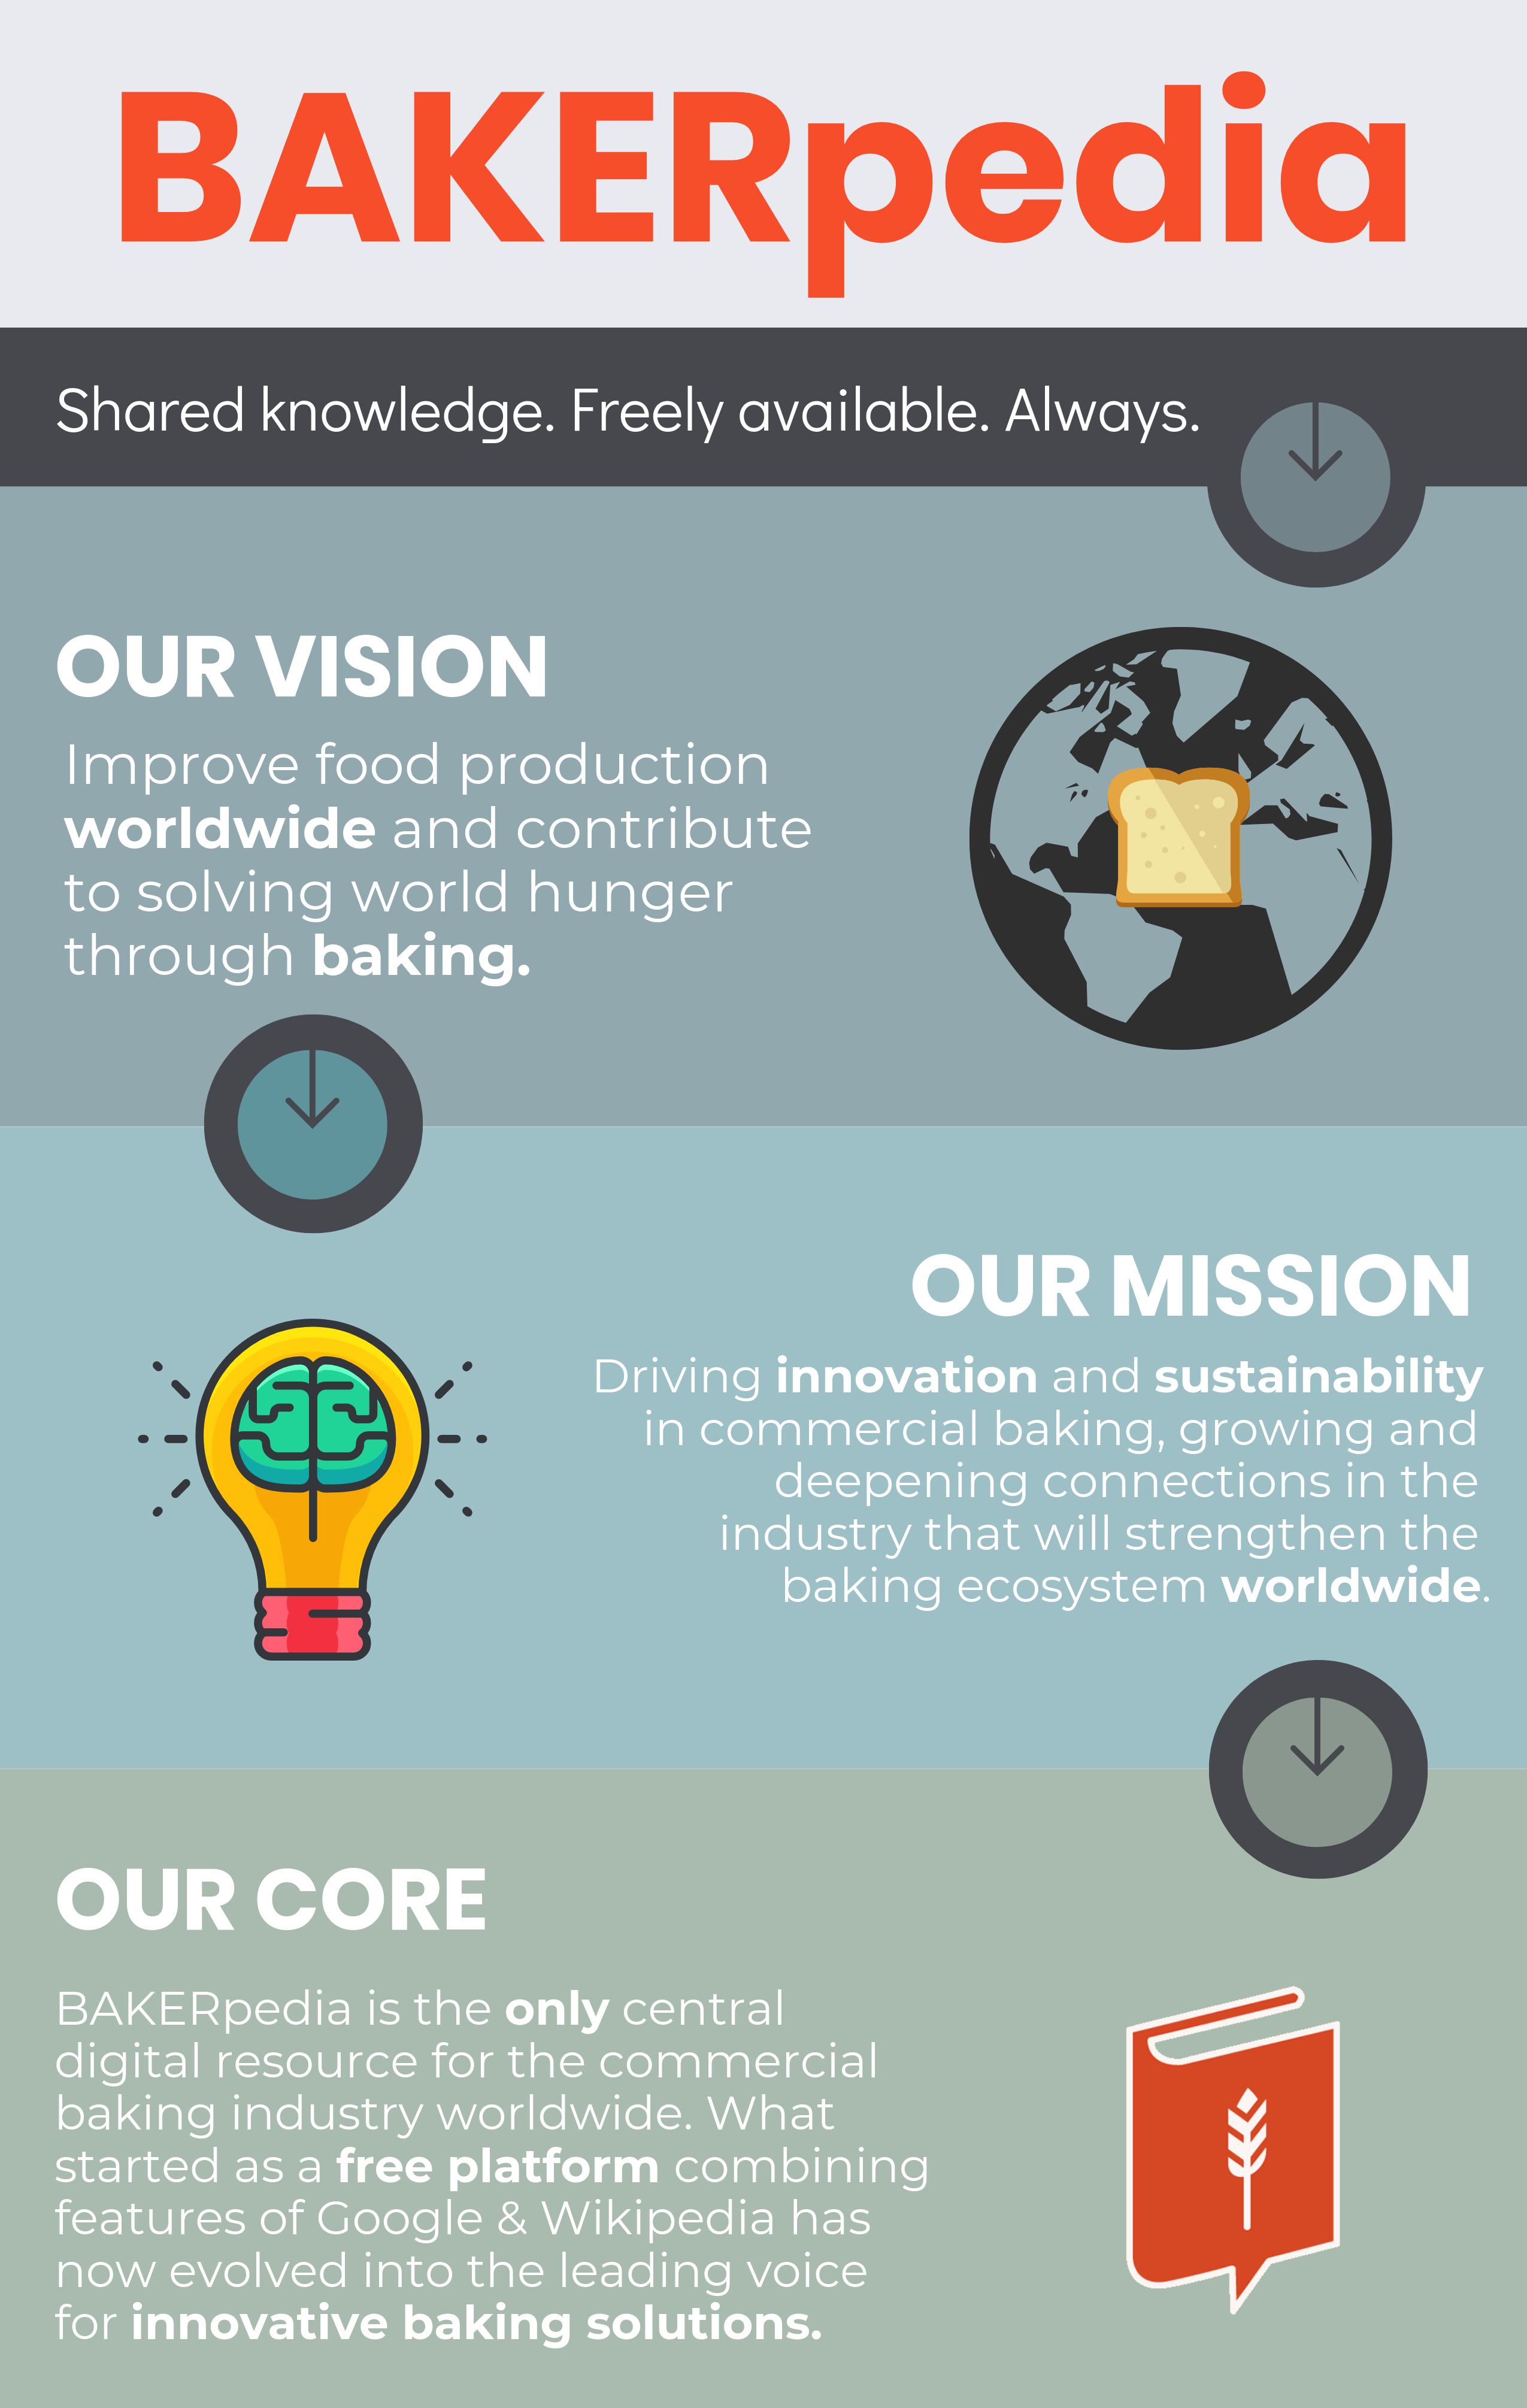 BAKERpedia Shared knowledge. Freely available. Always. Here for the commercial baking industry.